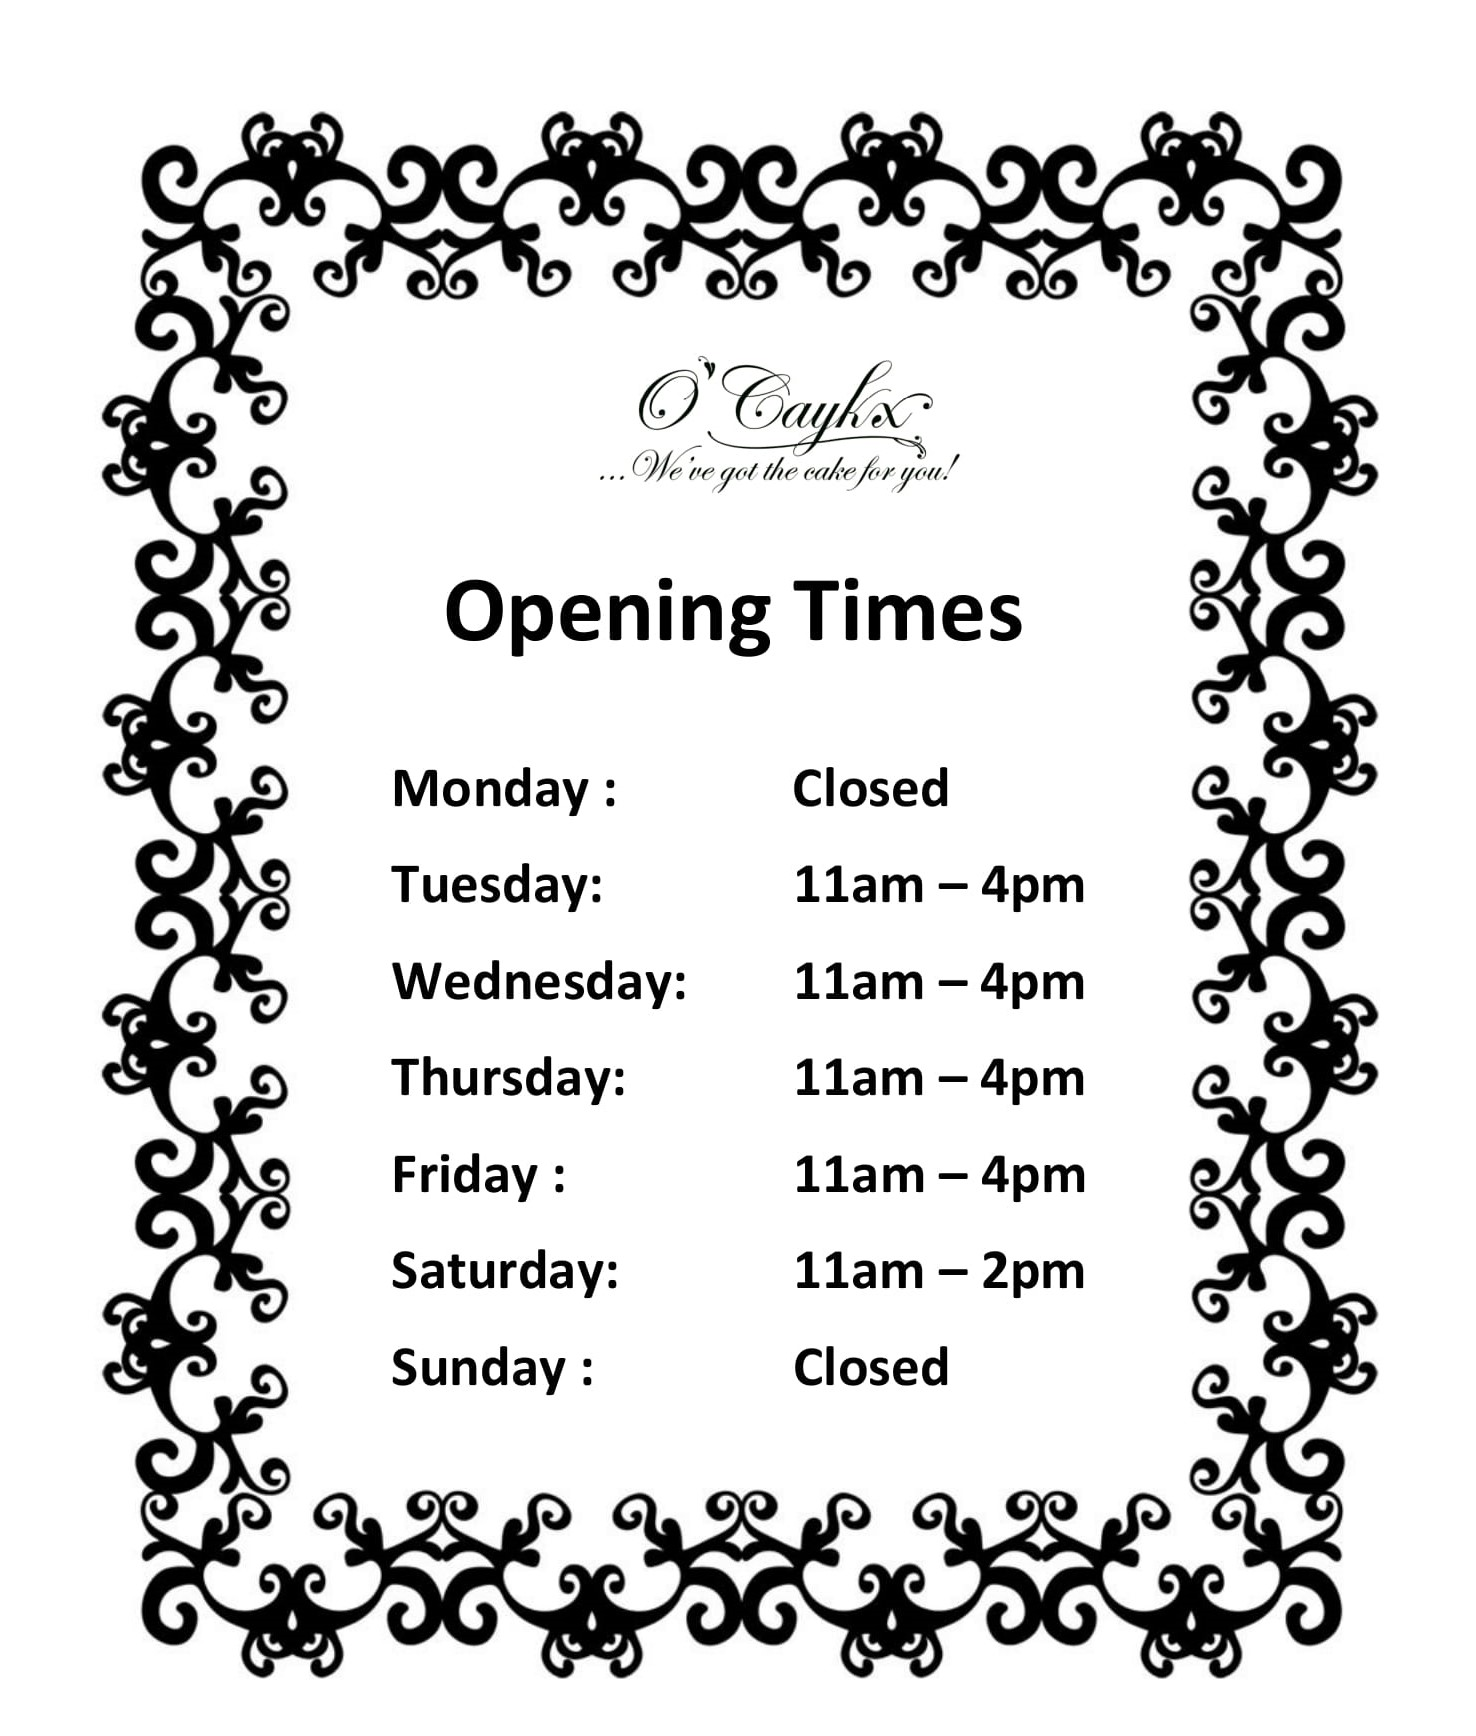 opening-times-pcovid-1.jpg